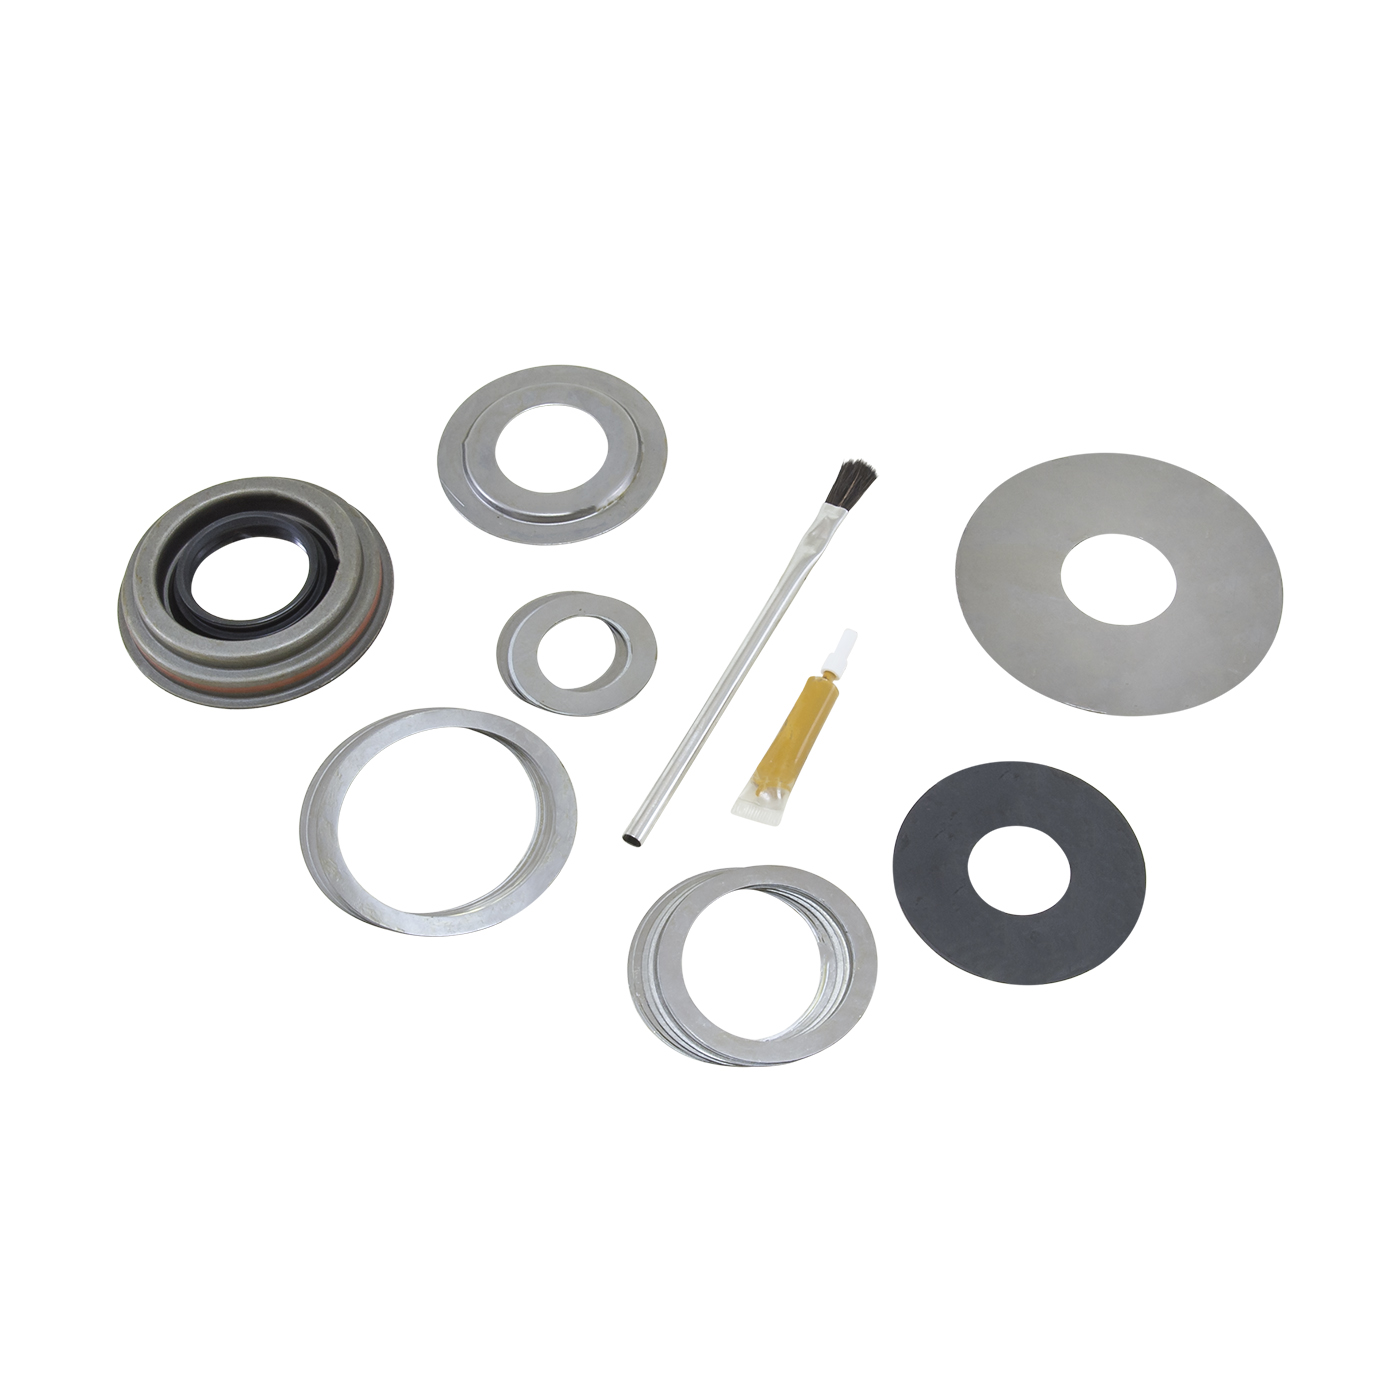 MK D44-RUB - Yukon Minor install kit for Dana 44 differential for Rubicon